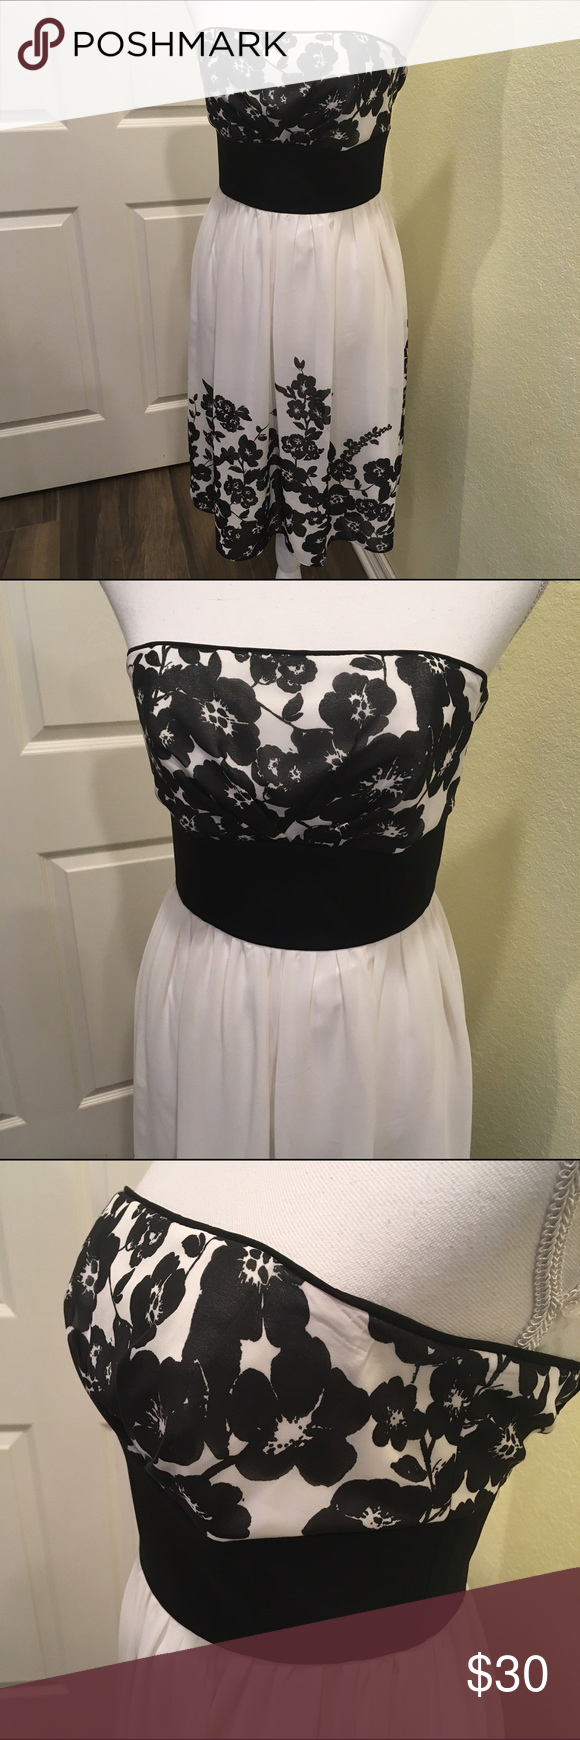 White House black market dress size 4 Beautiful dress great for any occasion. Is polyester so fairly wrinkle resist. Measures 15.5 across at bust and 15 across at waist and about 35 inches long that's from arm pit to hem line. It is strapless. White House Black Market Dresses Midi